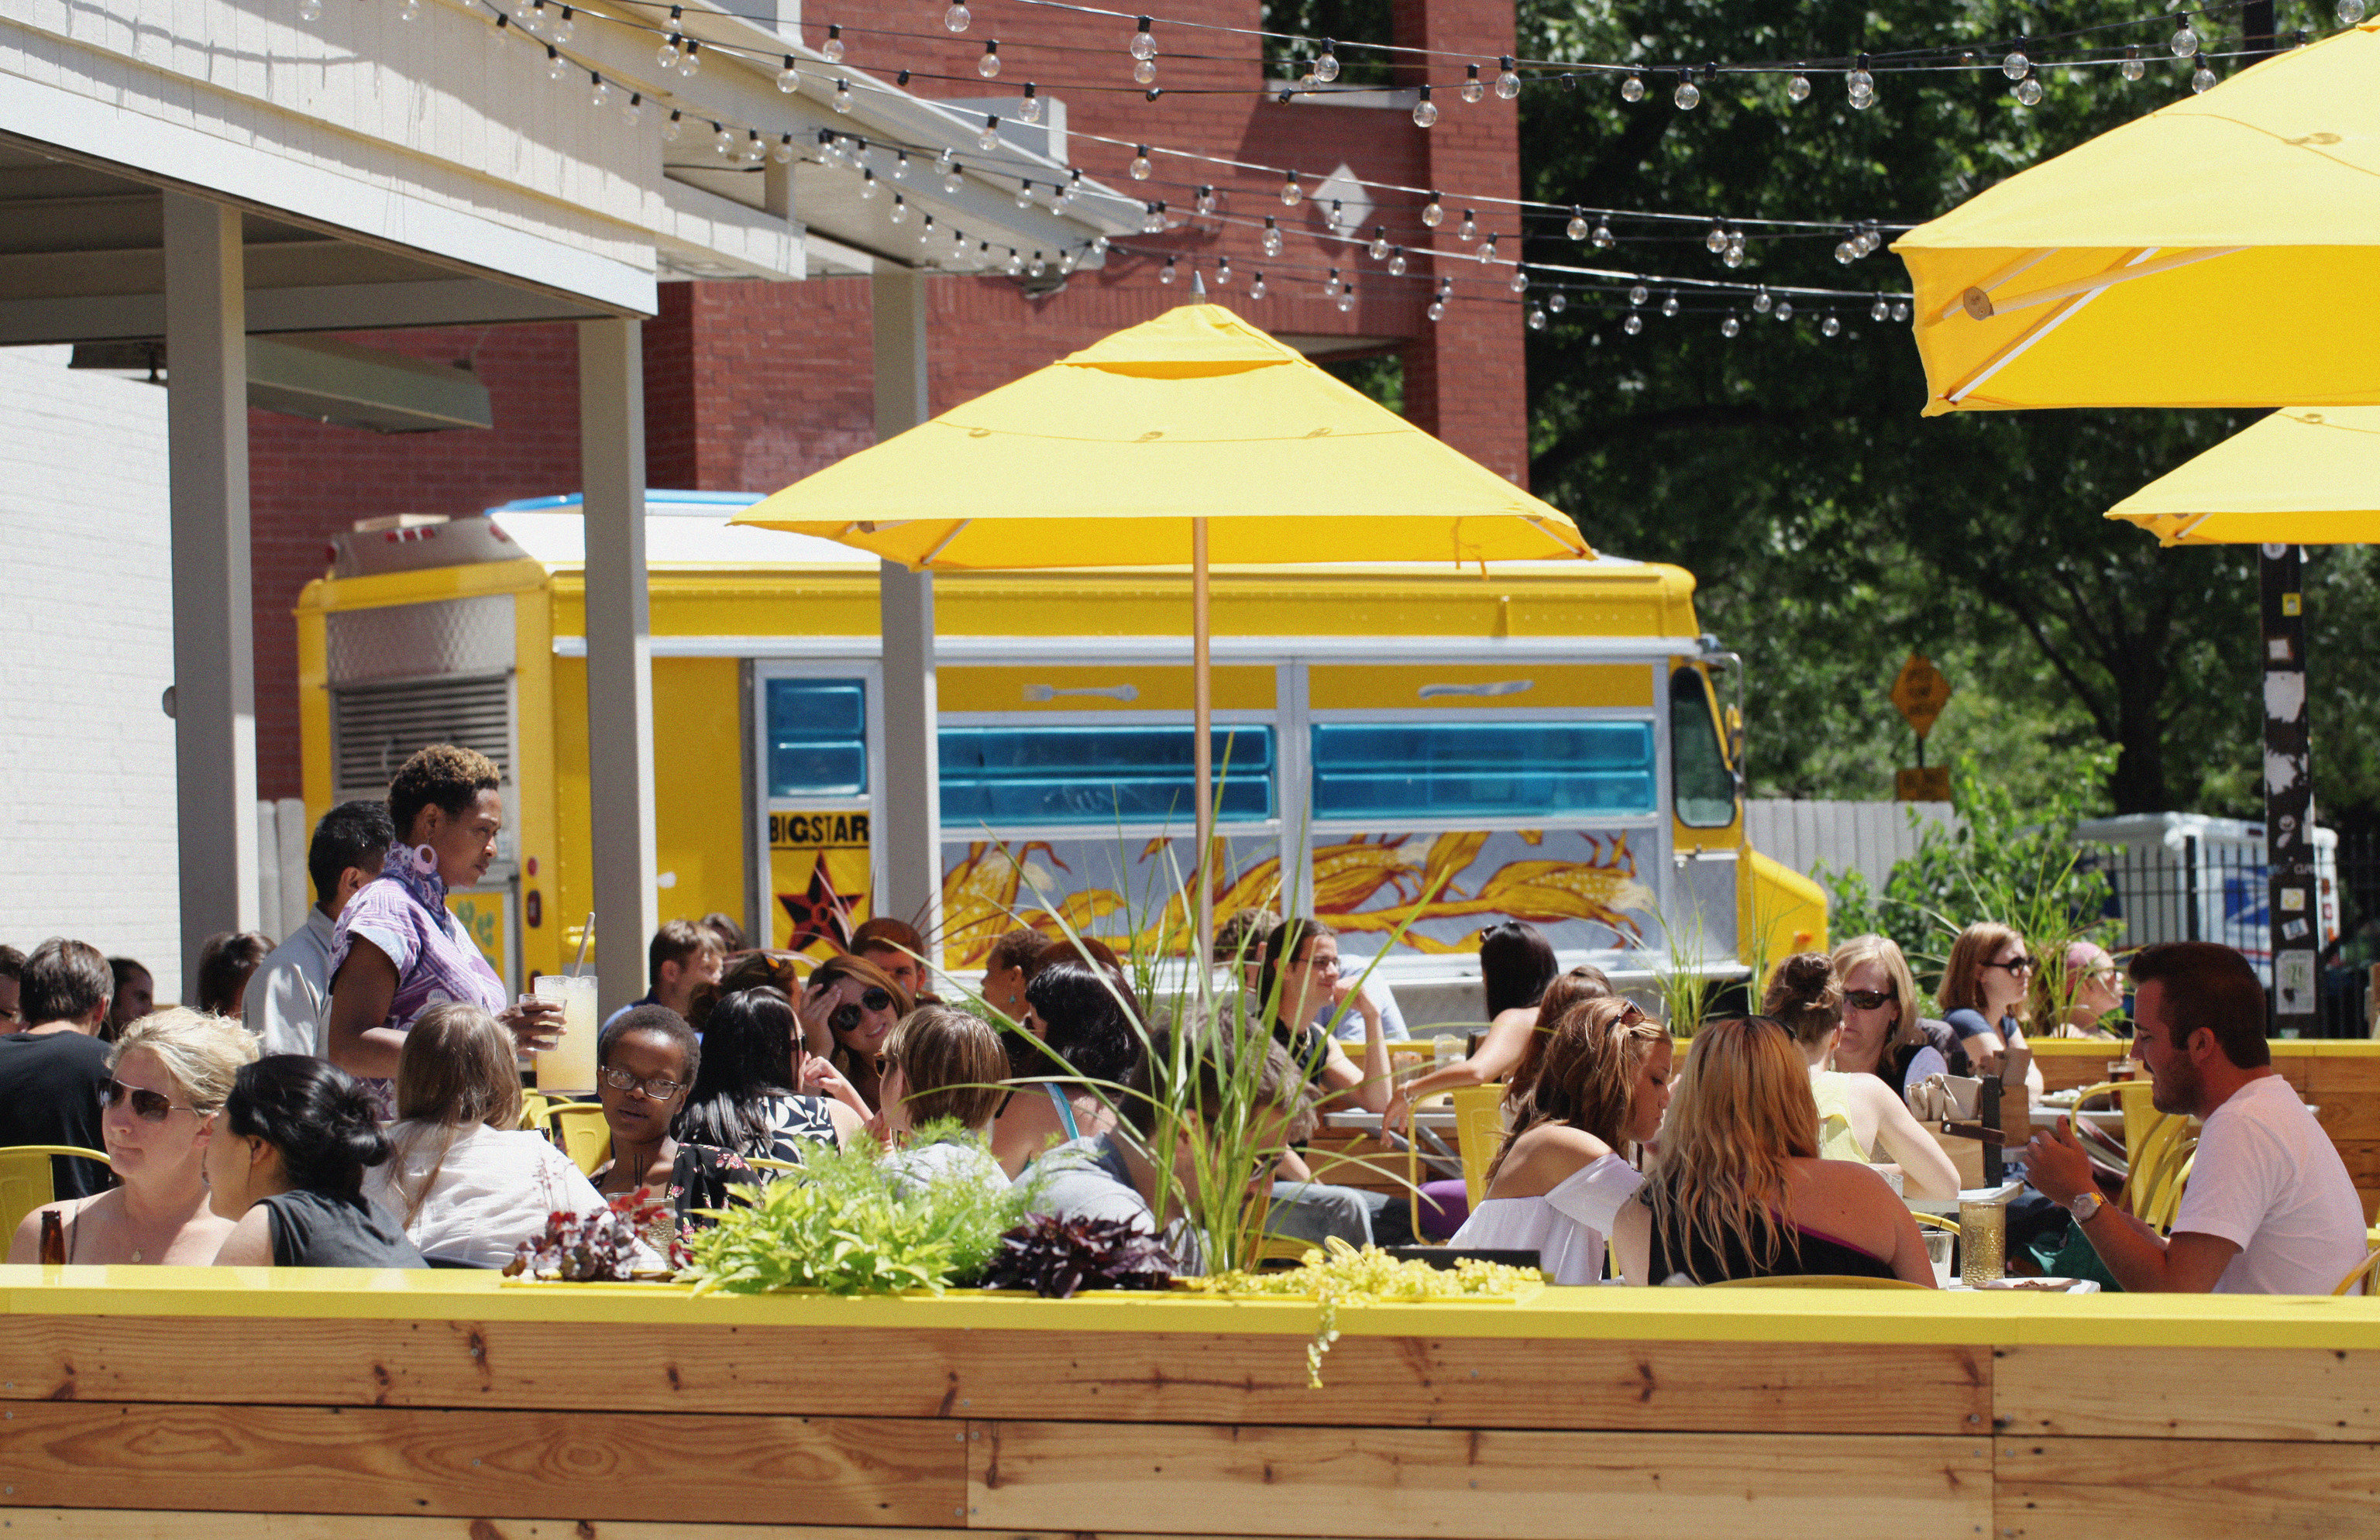 Arts + Culture Food + Drink Hotels Weekend Getaways person outdoor people City vendor group yellow fair lunch several